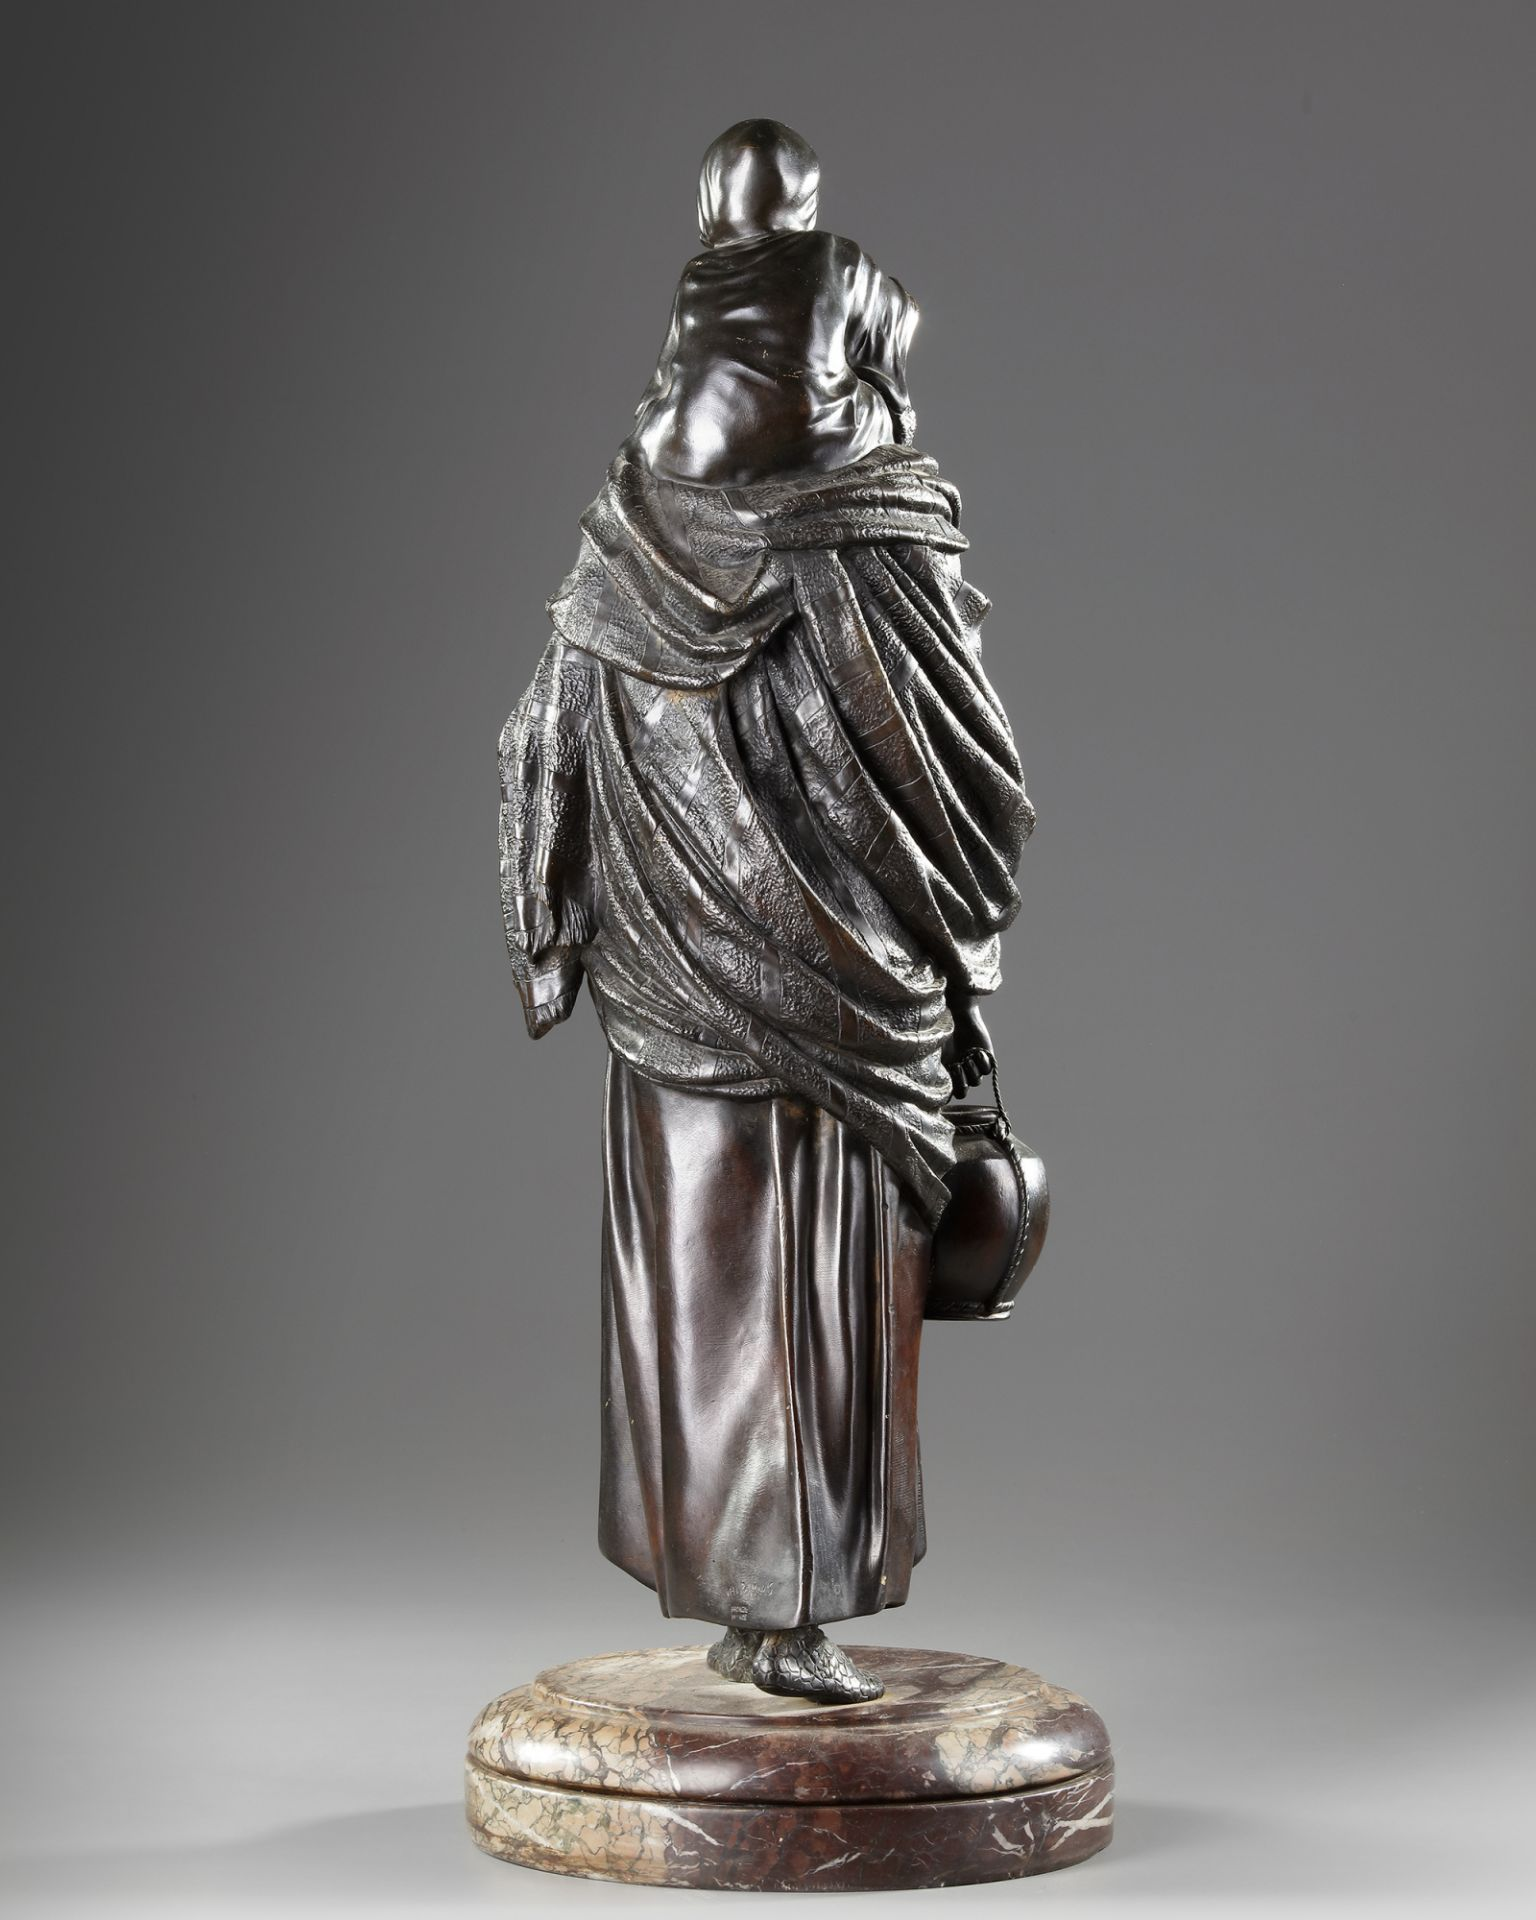 A BRONZE STATUE OF A LADY, DEMETRE CHIPARUS, 20TH CENTURY - Image 4 of 5